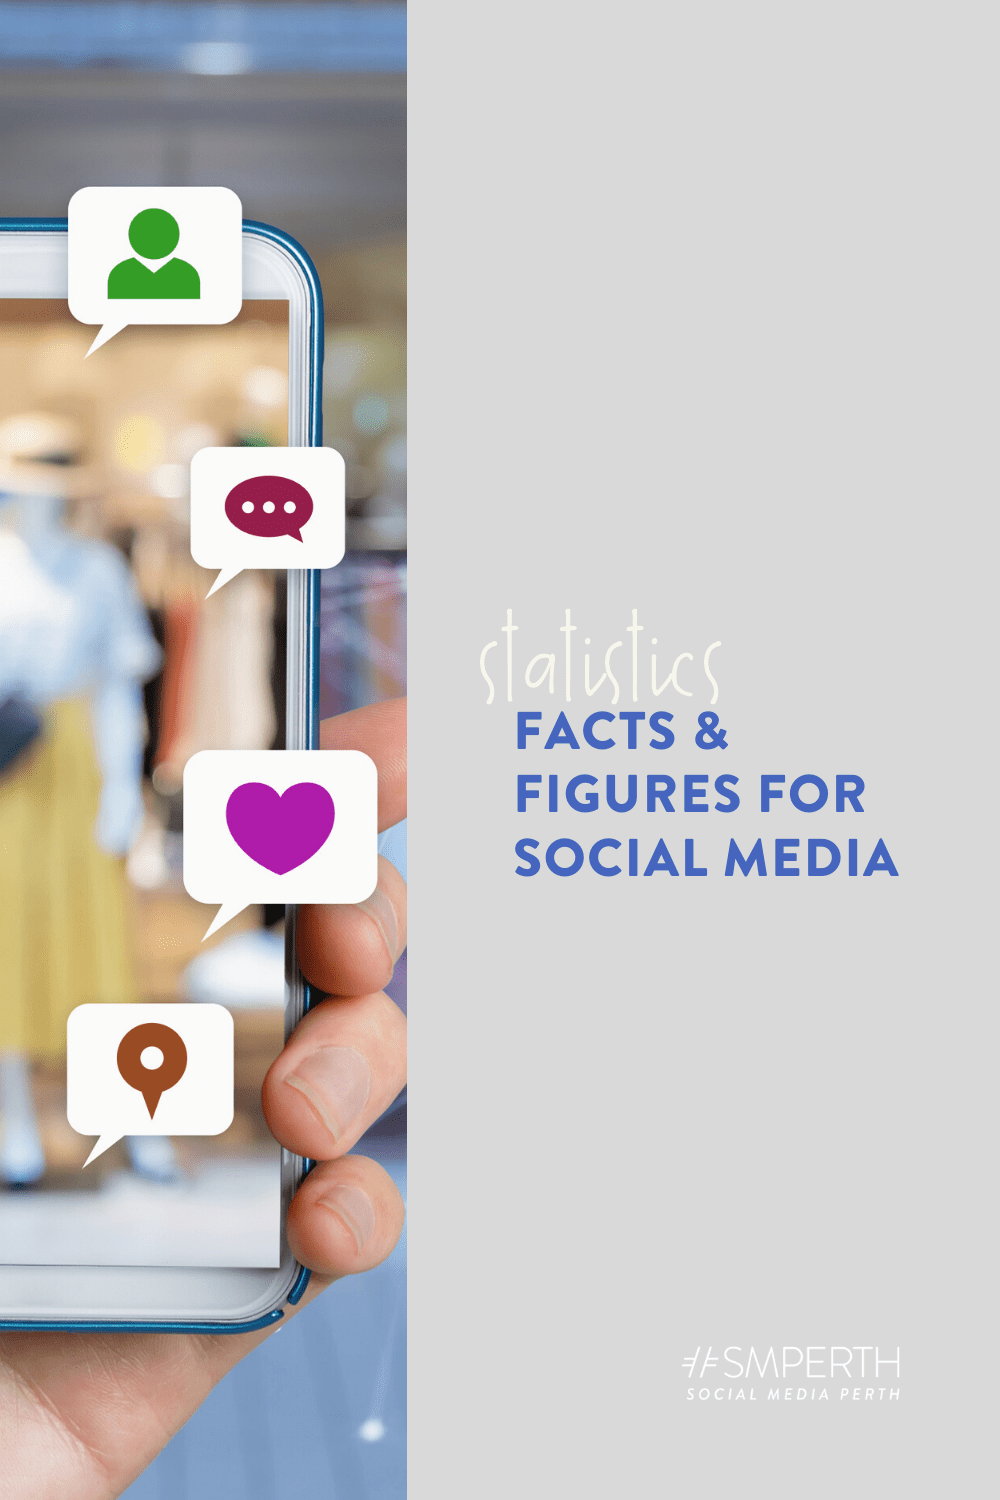 Facts & Figures // Social Media Statistics for 2021